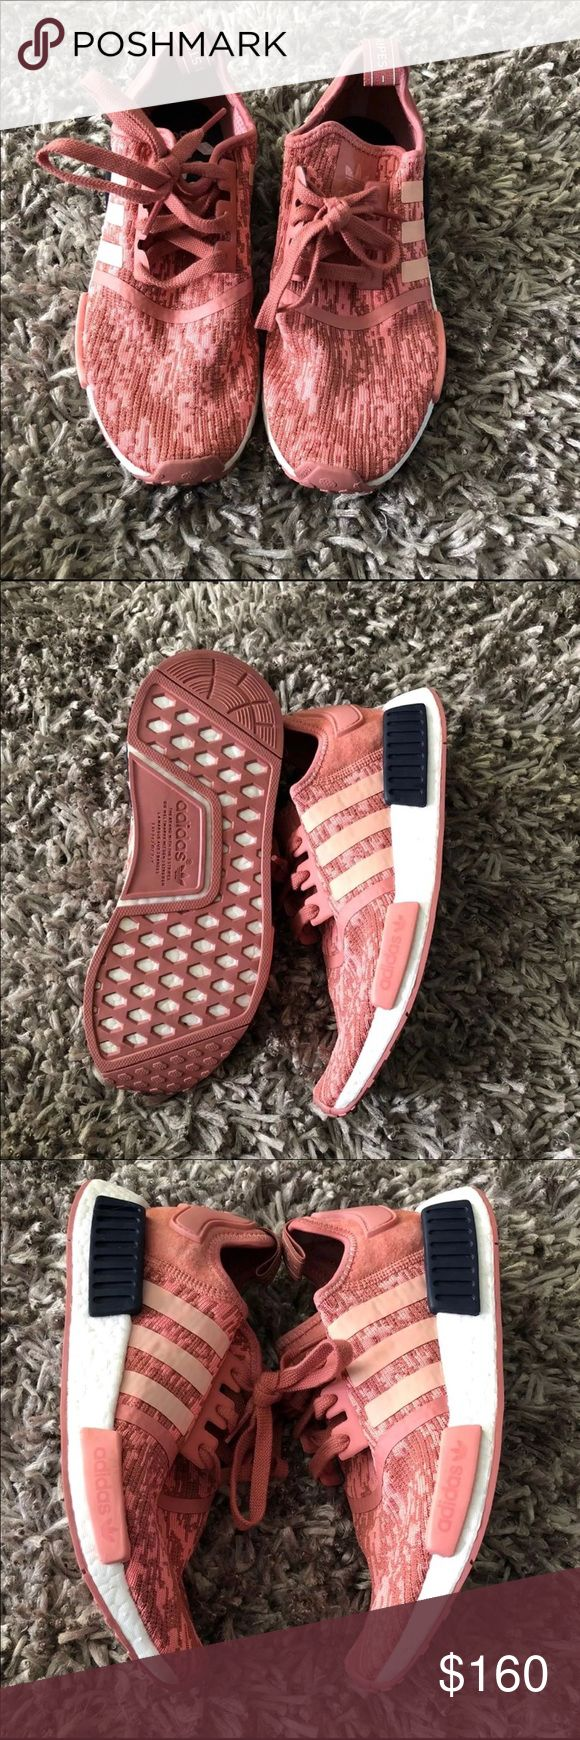 Adidas NMD raw pink Only worn twice! Original box included SOLD OUT ONLINE women's size 8 adidas Shoes Athletic Shoes